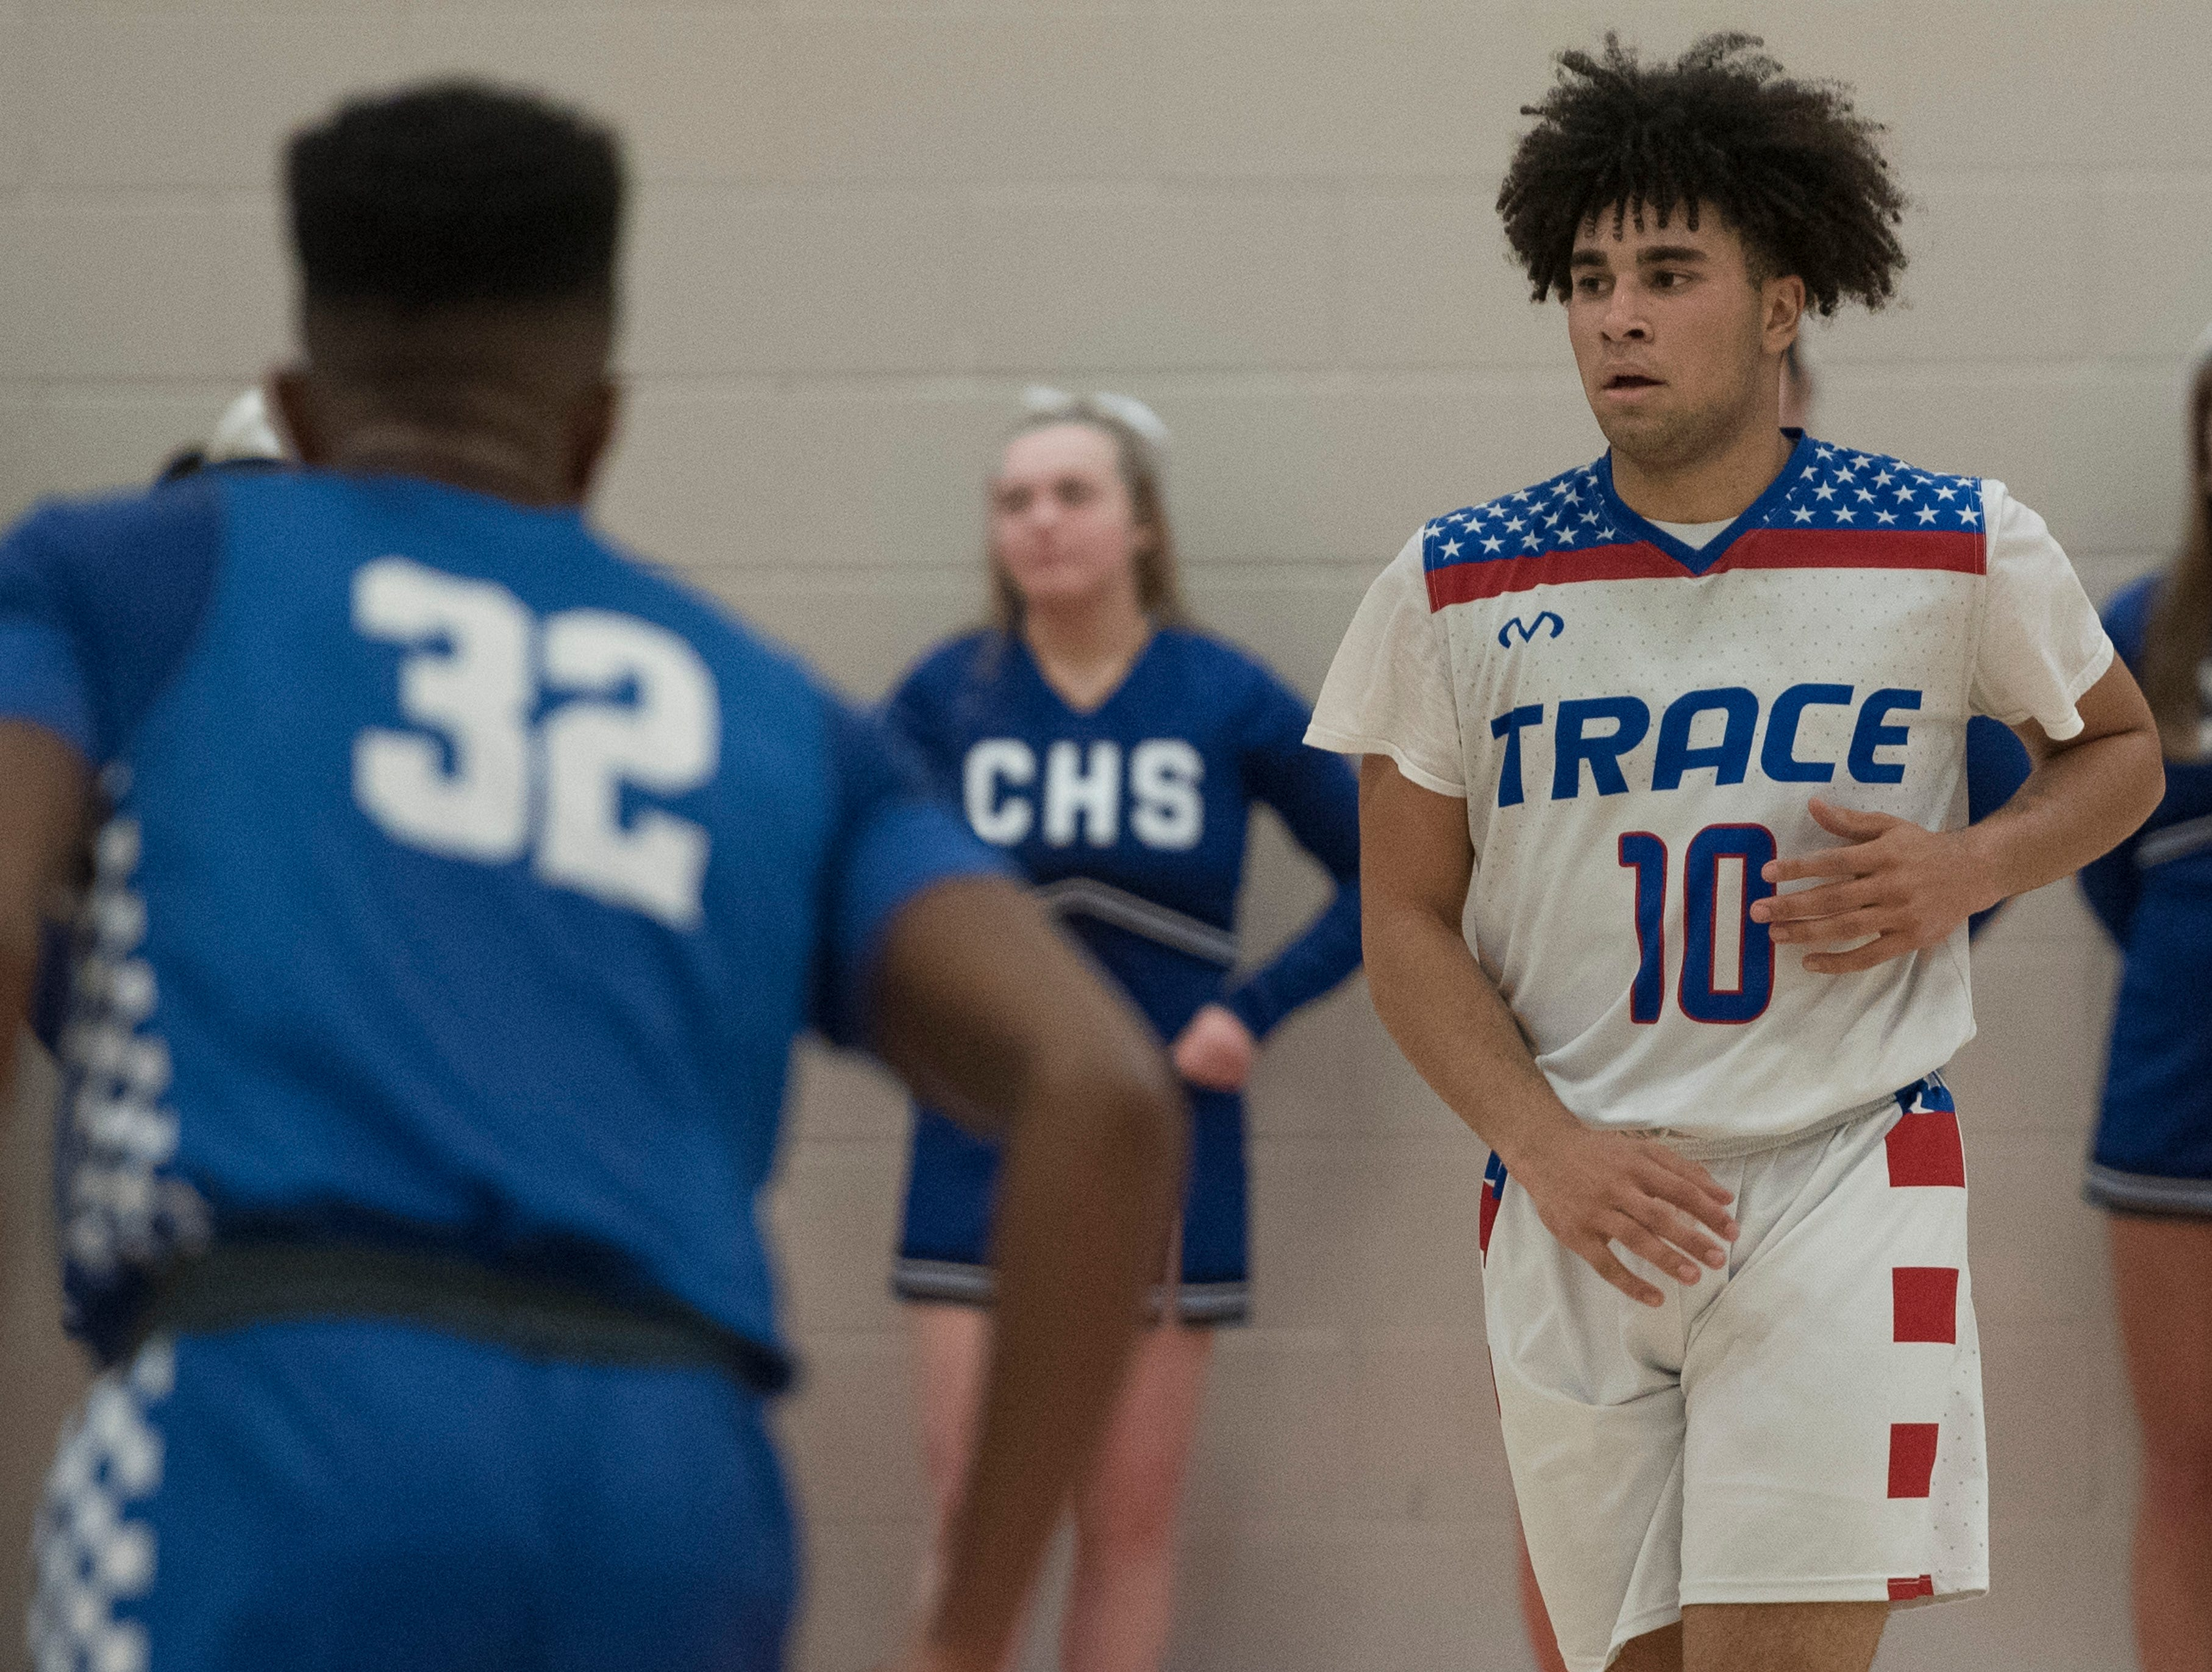 Zane Trace defeated Chillicothe 45-33 Tuesday night at Zain Trace High School, making the Pioneers 1-1 for the season.